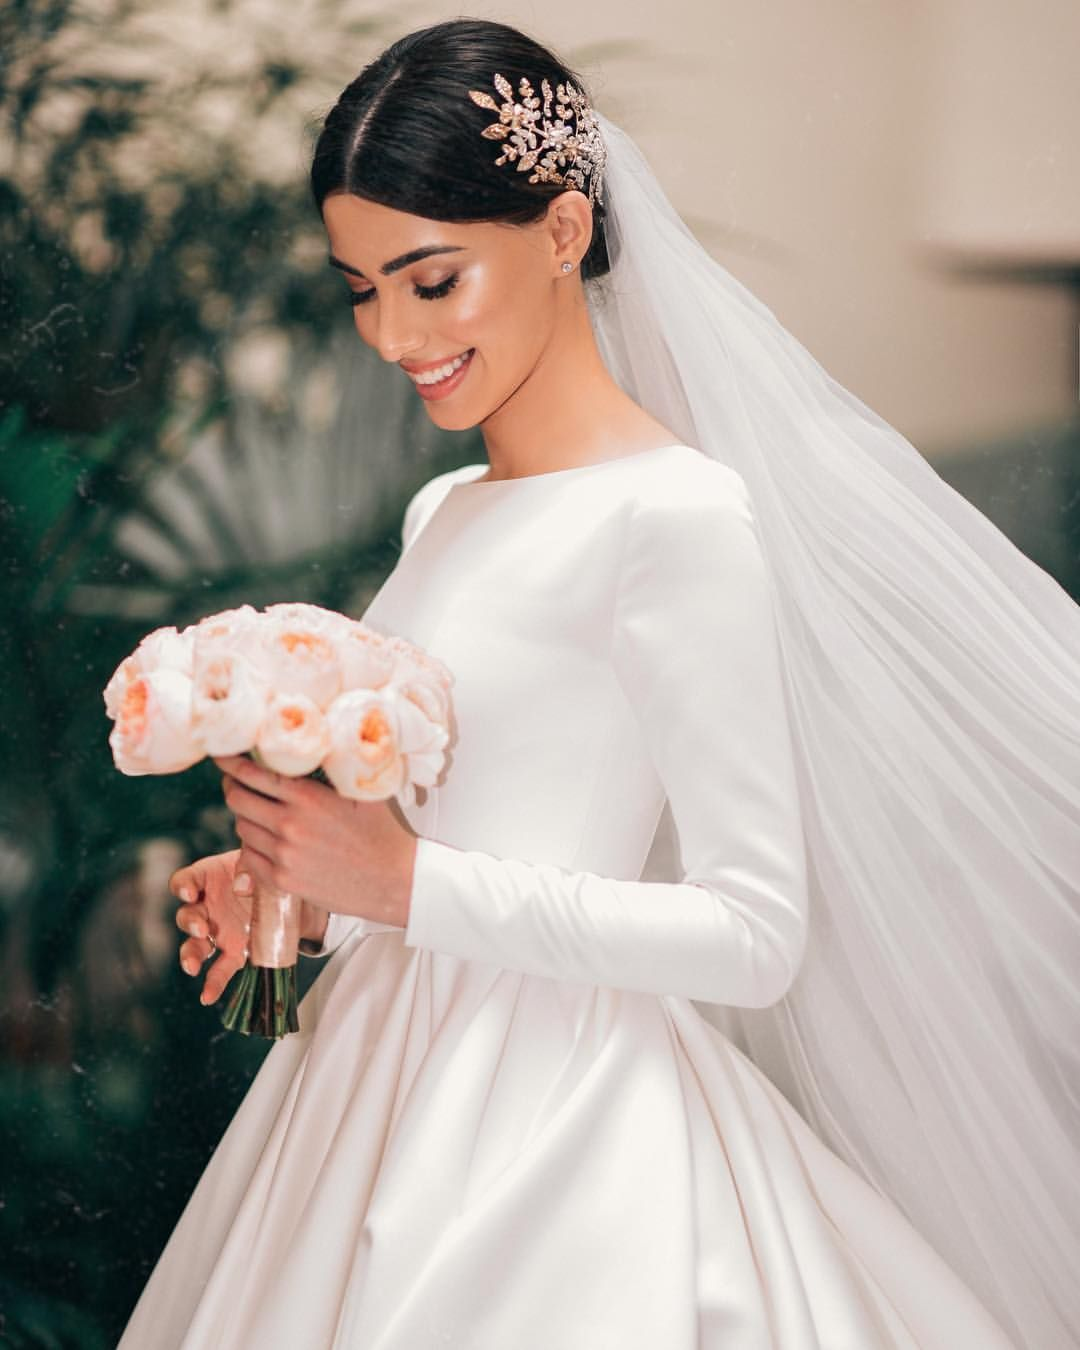 A Beautiful Bride Wearing A Simple But Elegant Long Sleeved